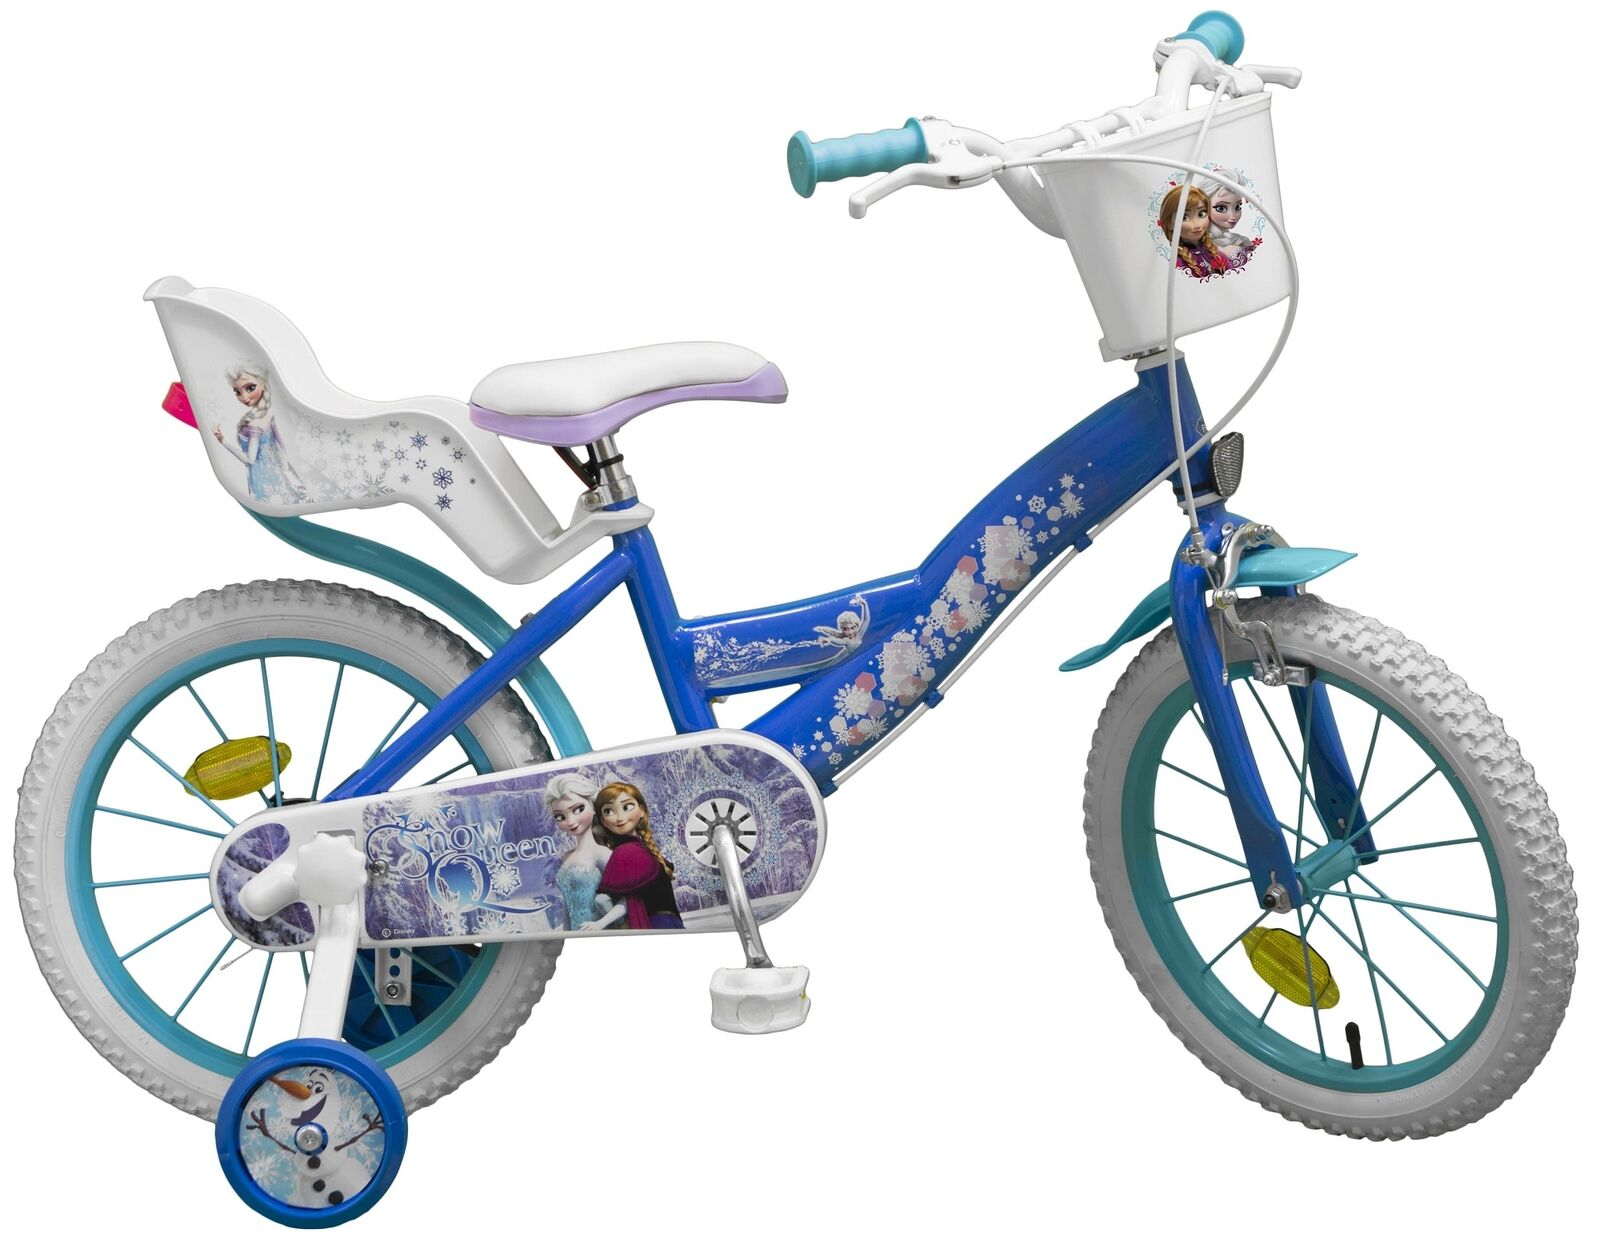 kinderfahrrad disney frozen die eisk nigin 16 zoll kinder fahrrad m dchen rad picclick de. Black Bedroom Furniture Sets. Home Design Ideas